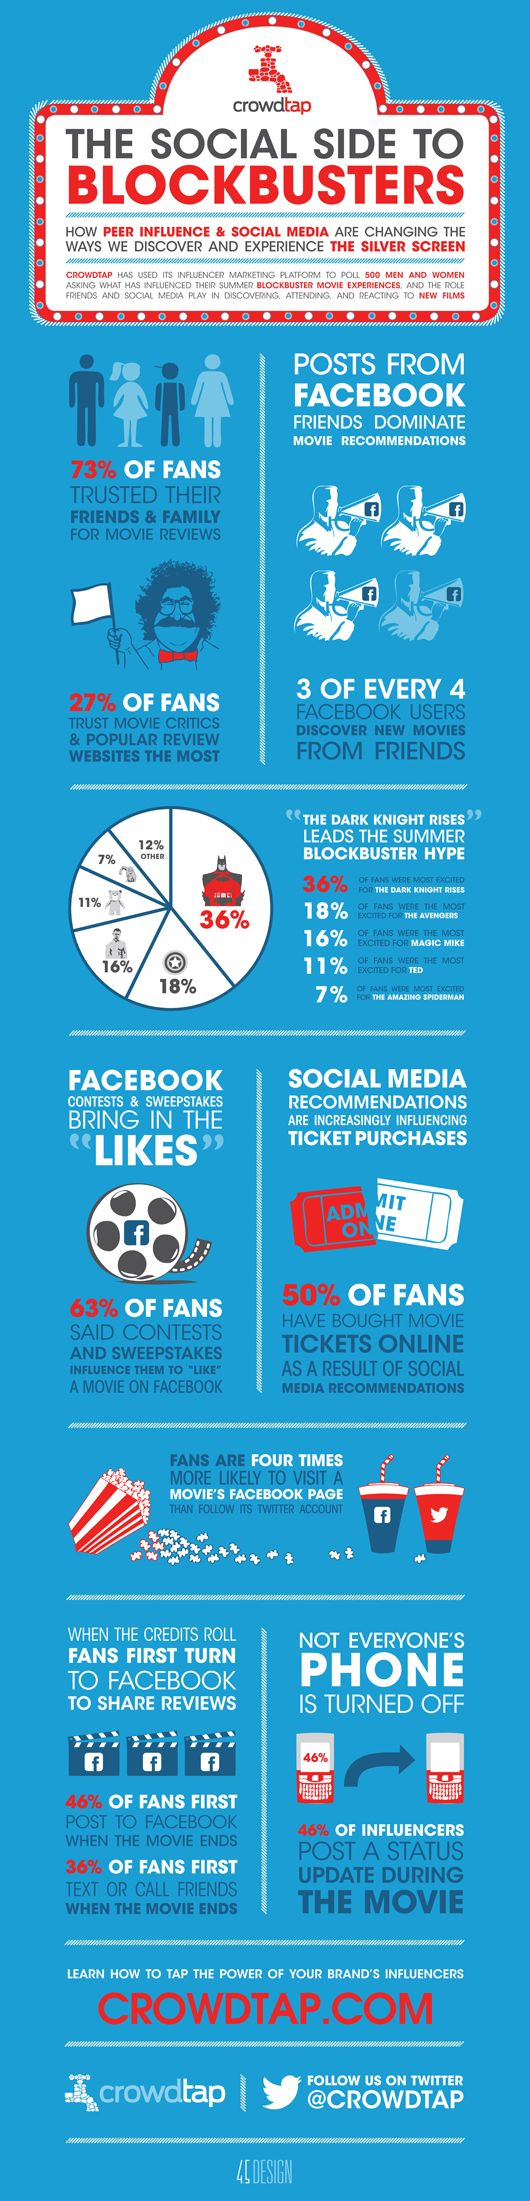 Infographic: How #socialmedia is changing the business of blockbuster movies